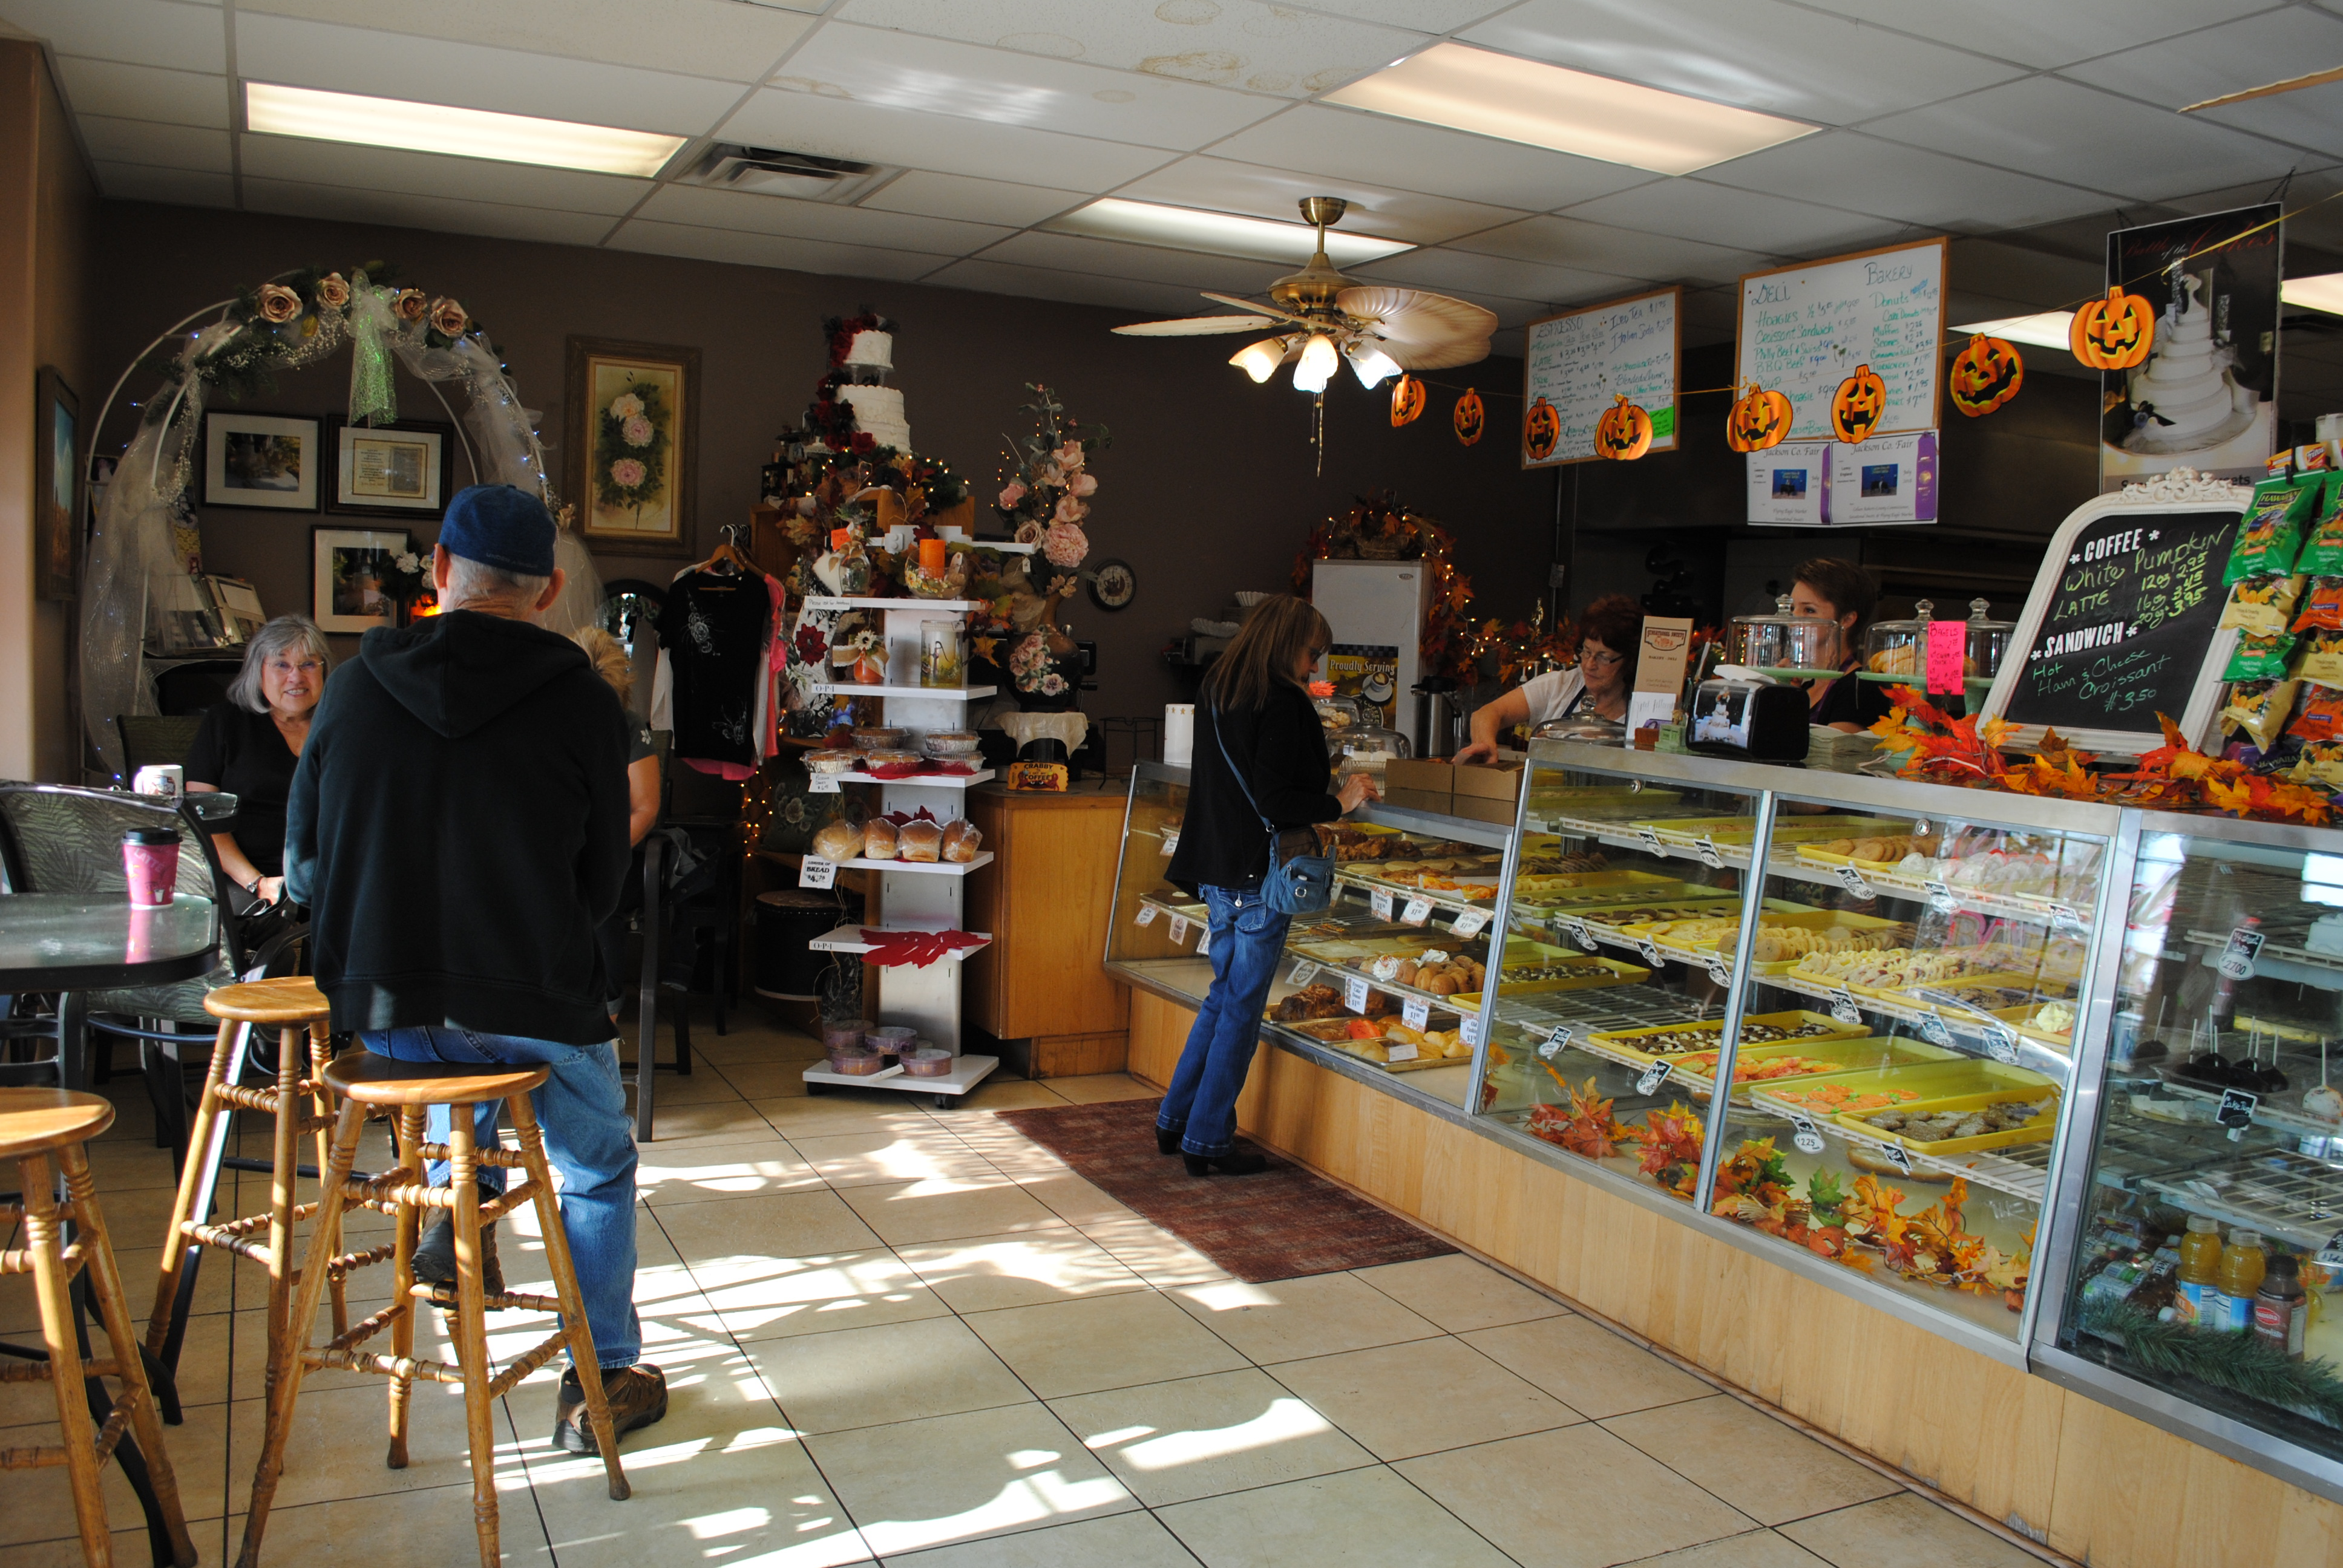 Sensational Sweets - Where to eat in Eagle Point - Travel Southern Oregon- What to do - Things to do